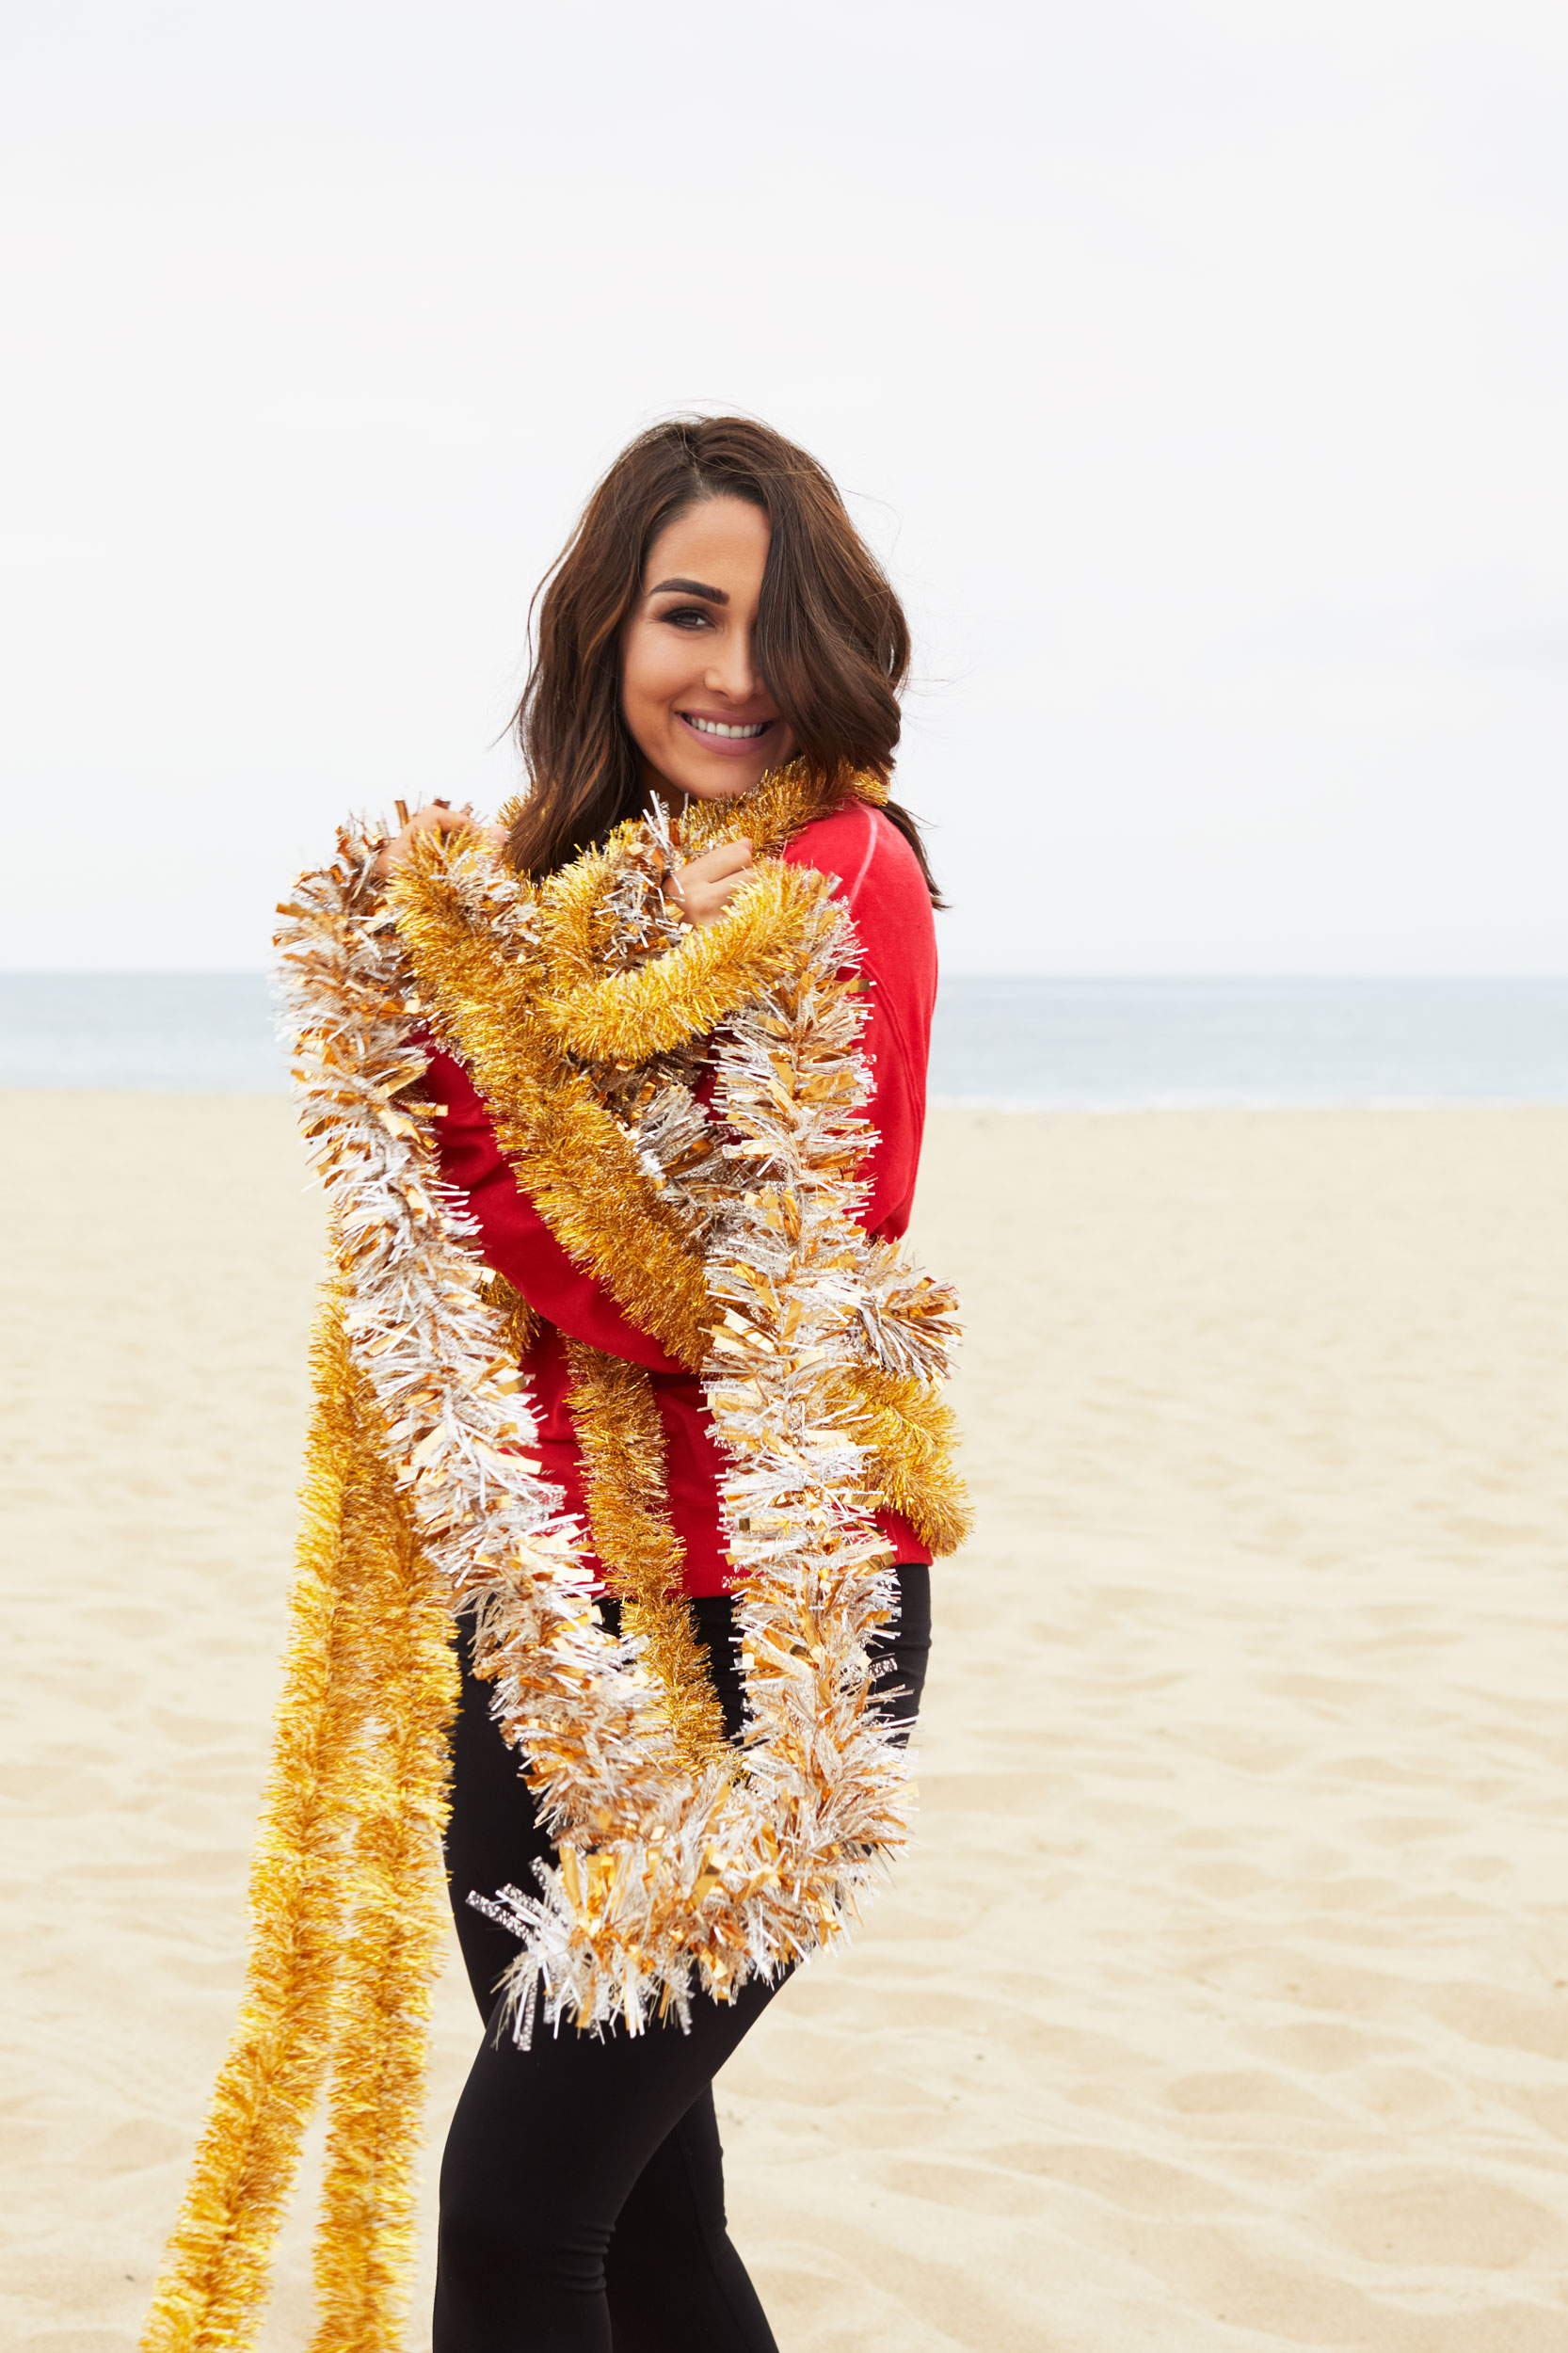 WWE diva Bree Bella on the beach with Christmas garland. Kim Genevieve Los Angeles Portrait Photographer